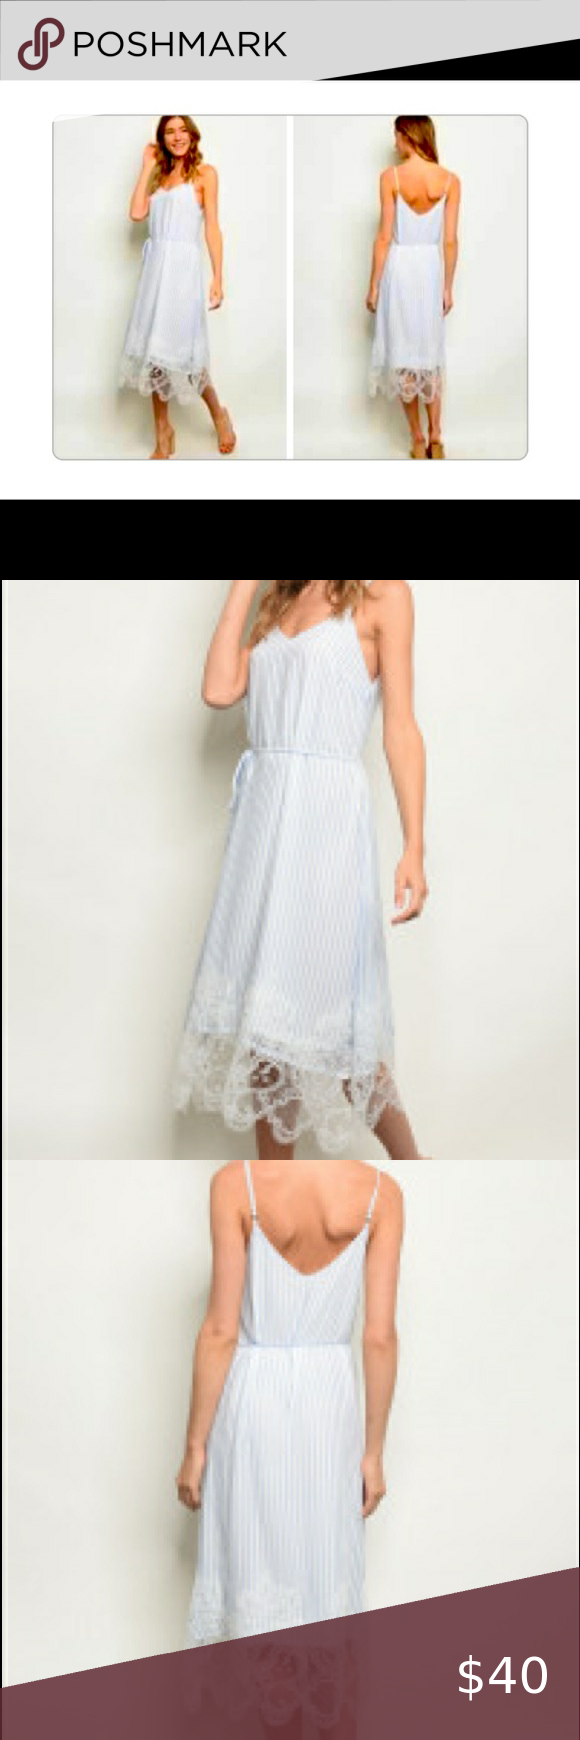 Blue and white candystripes knee-length dress